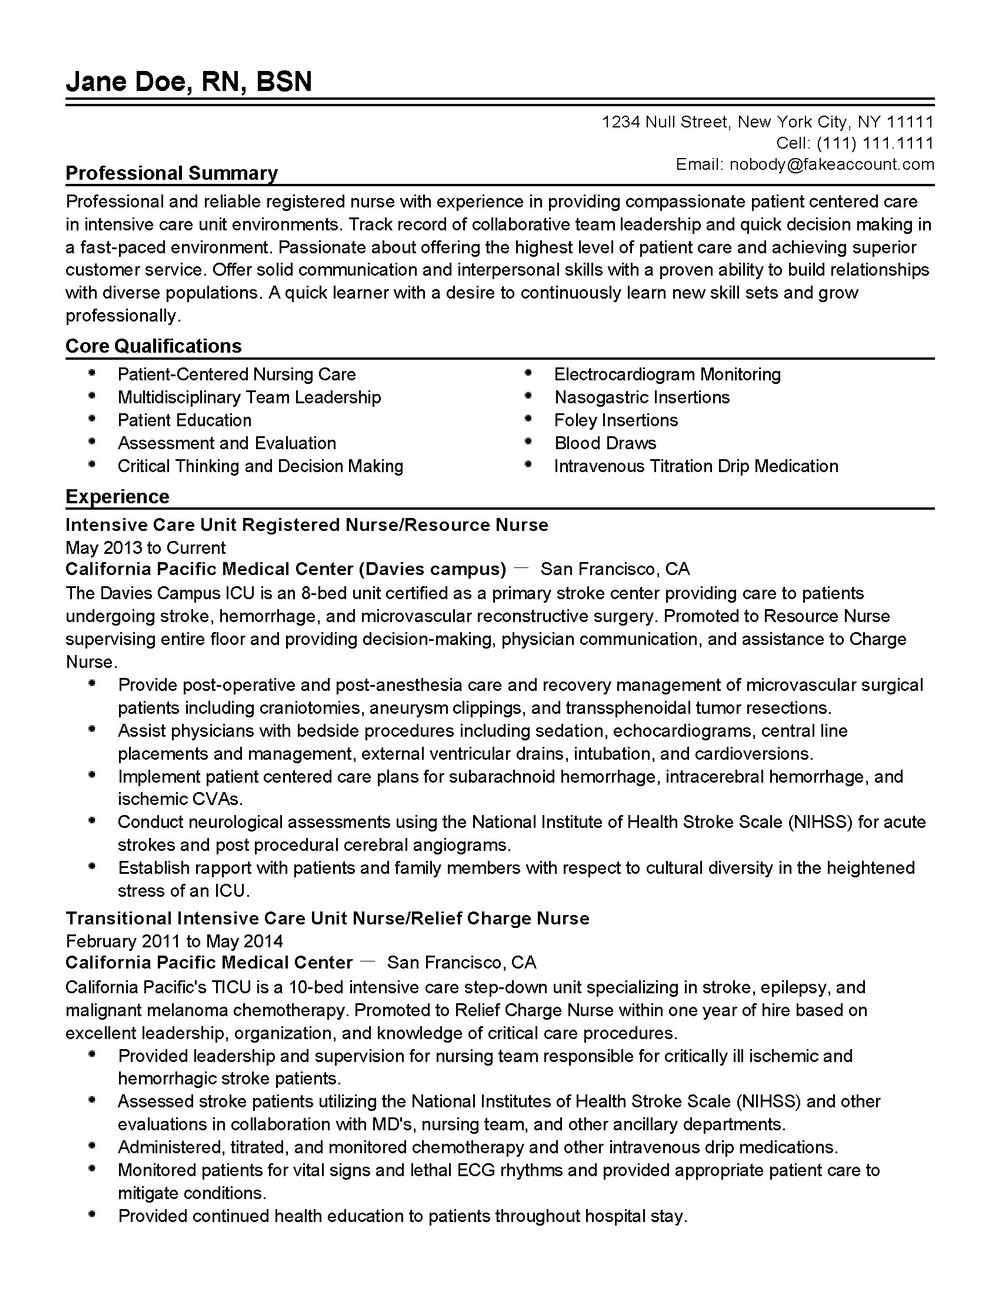 Professional Resume Template Pdf - Templates #12552 | Resume ...